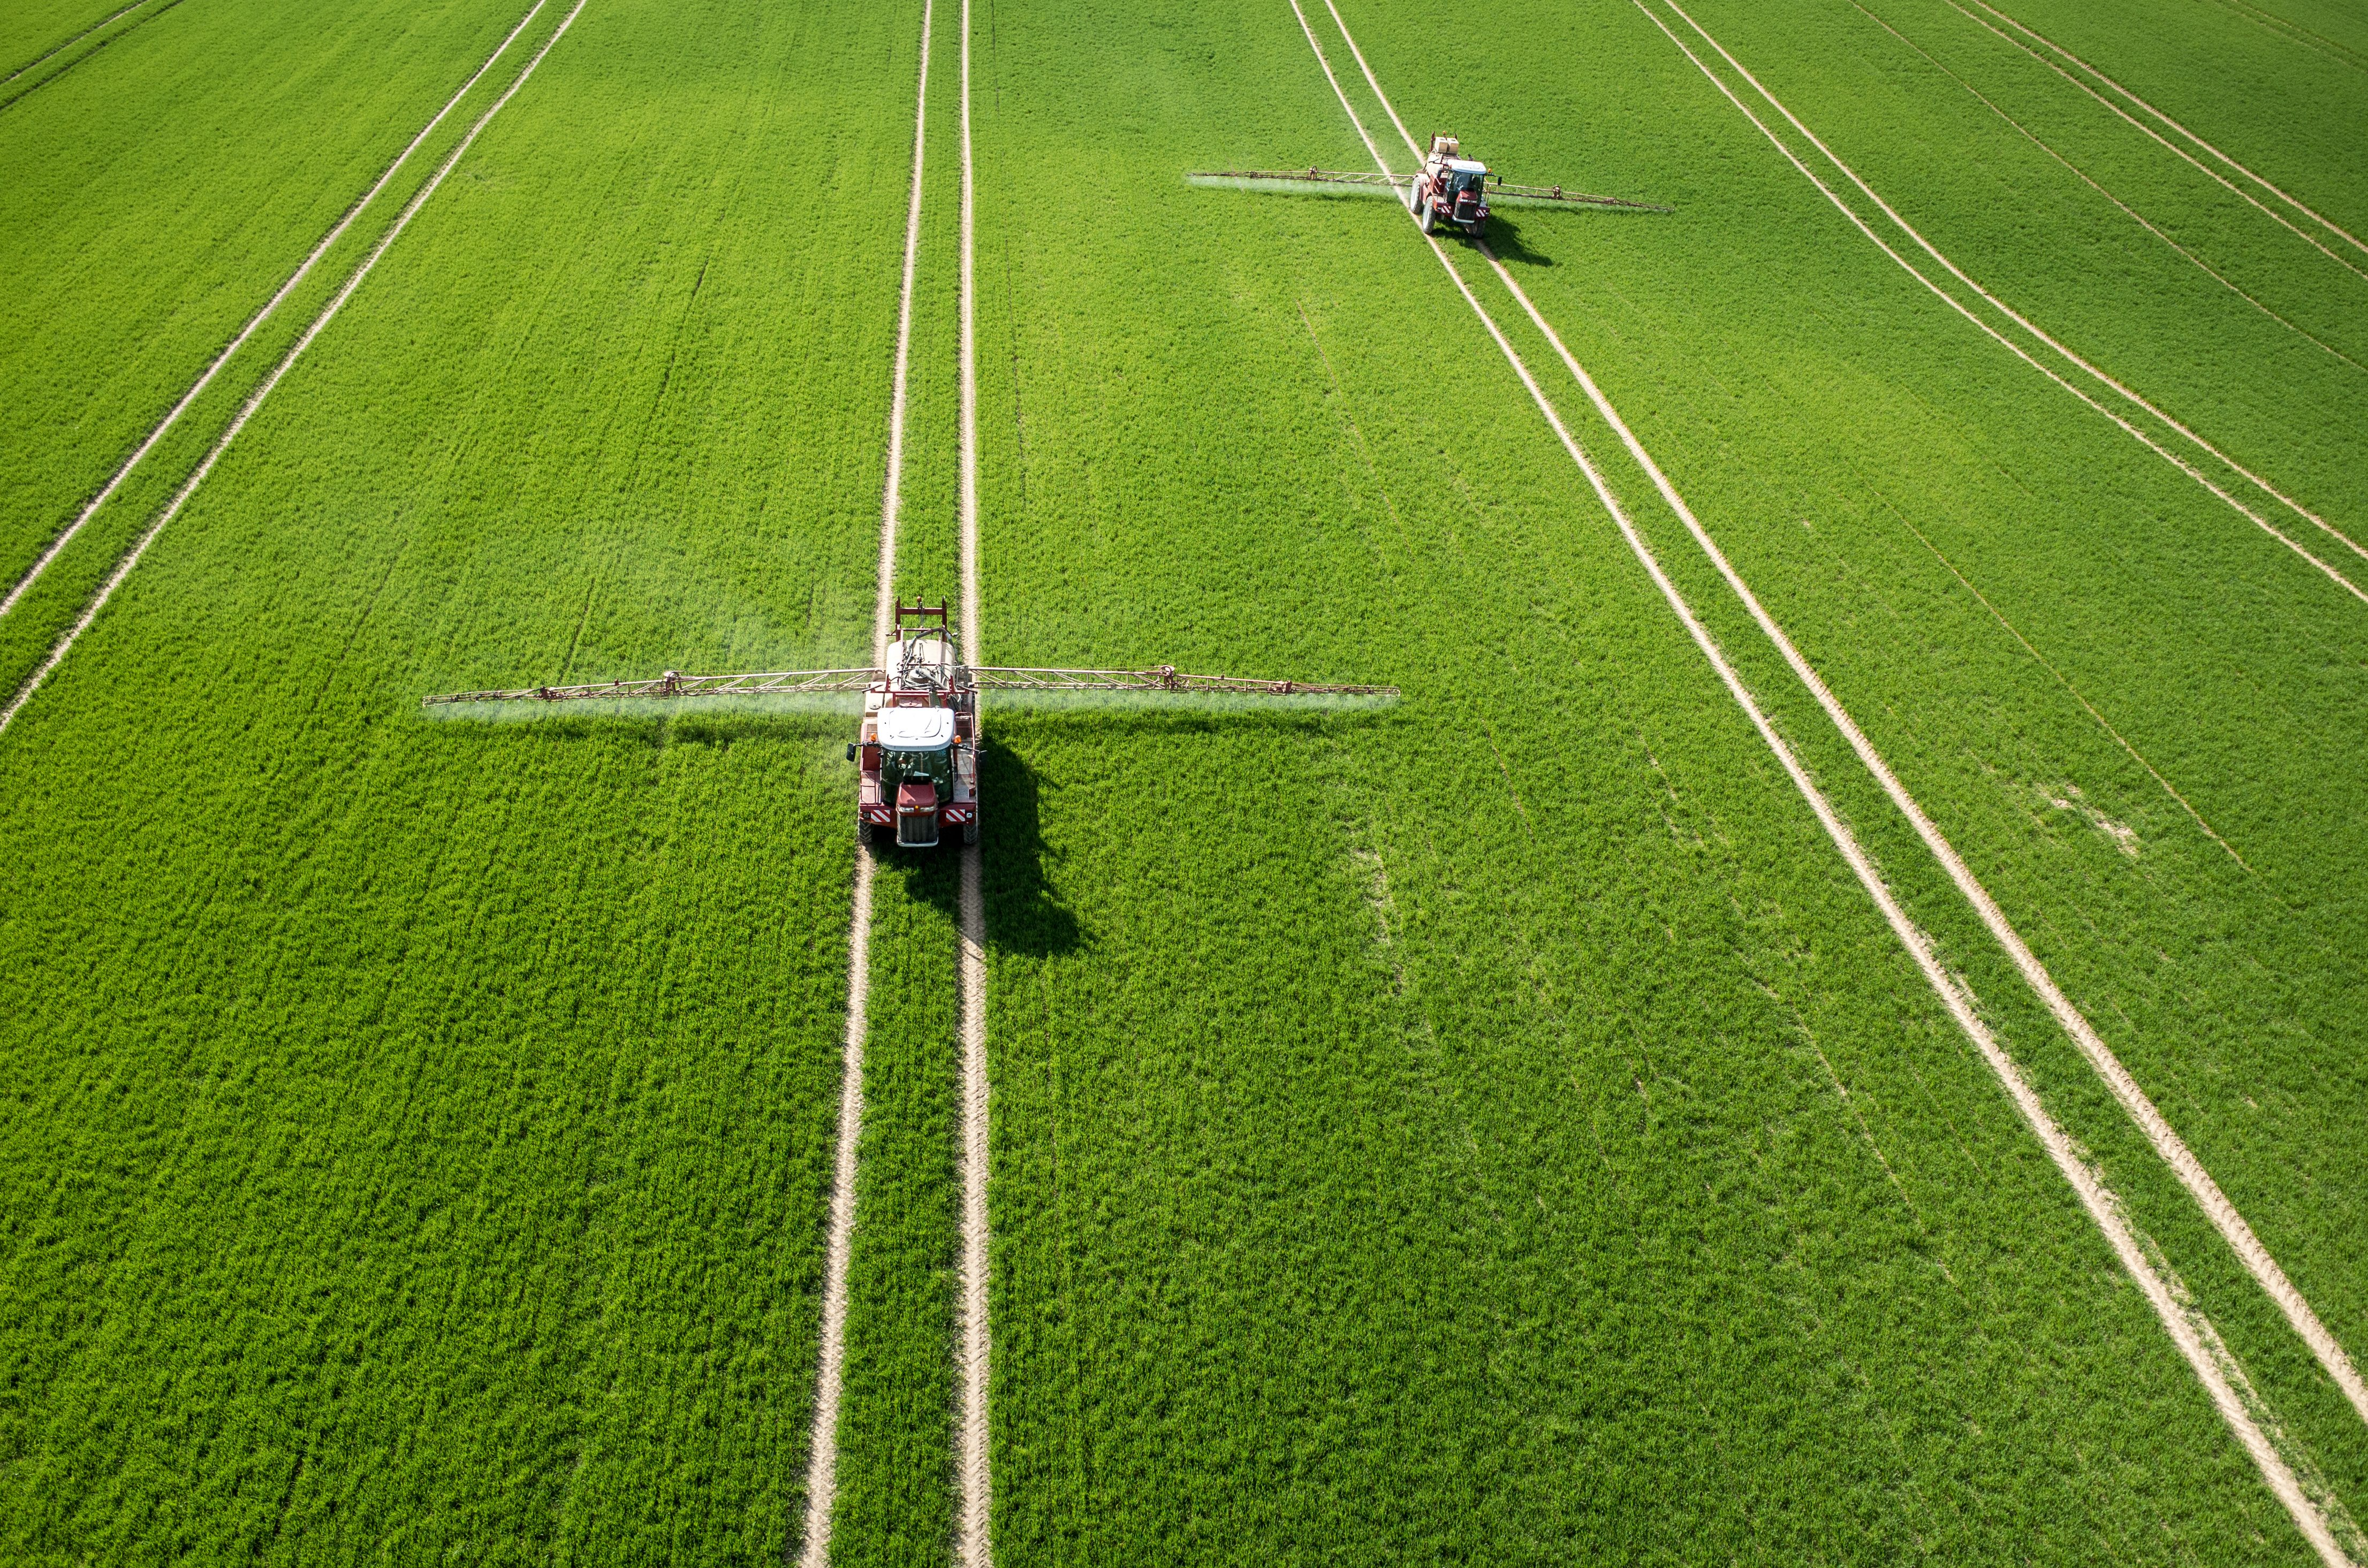 Less herbicides, more substainablity